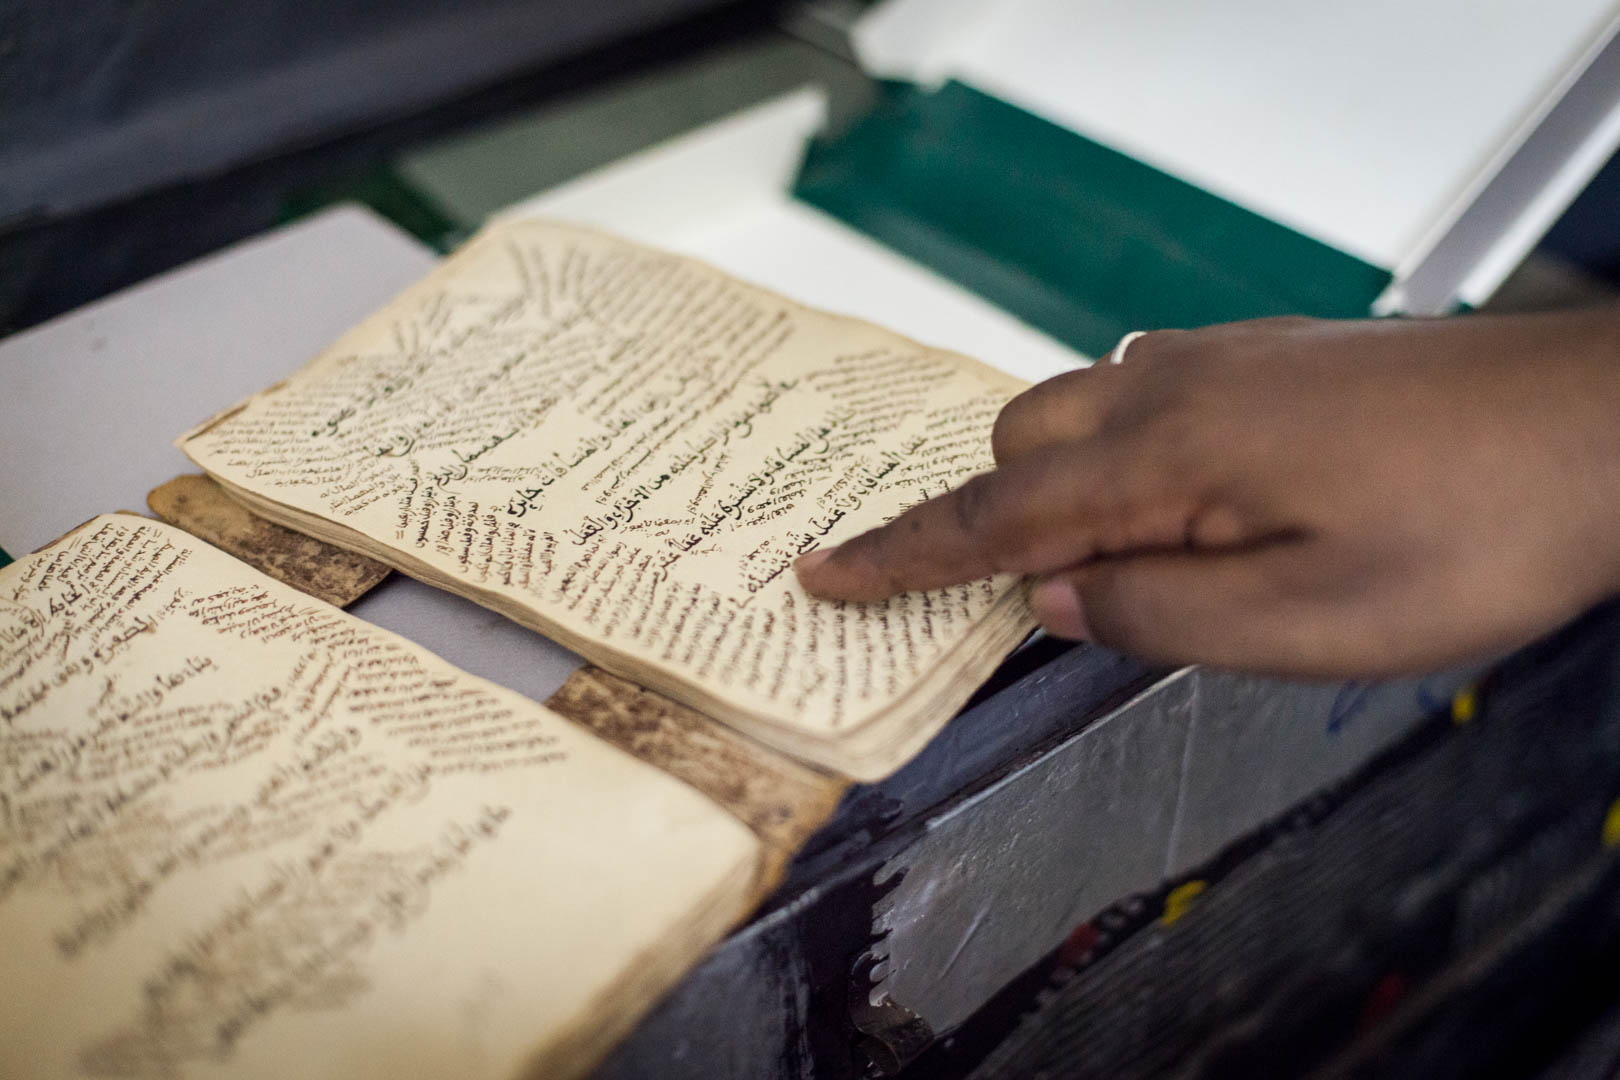 Abdel Kader Haidara points his finger on a document that used to be stored in his library in Timbuktu.